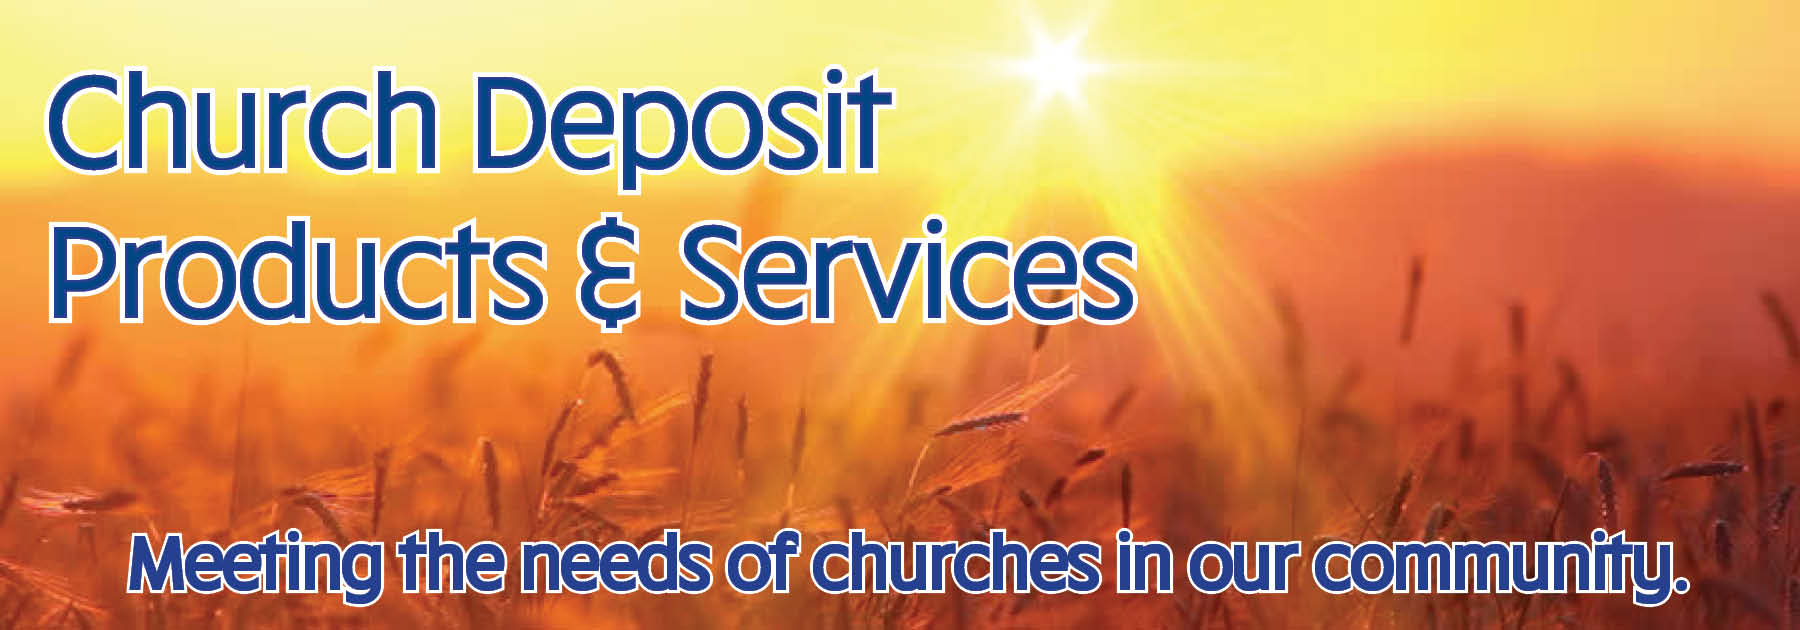 Church Accounts